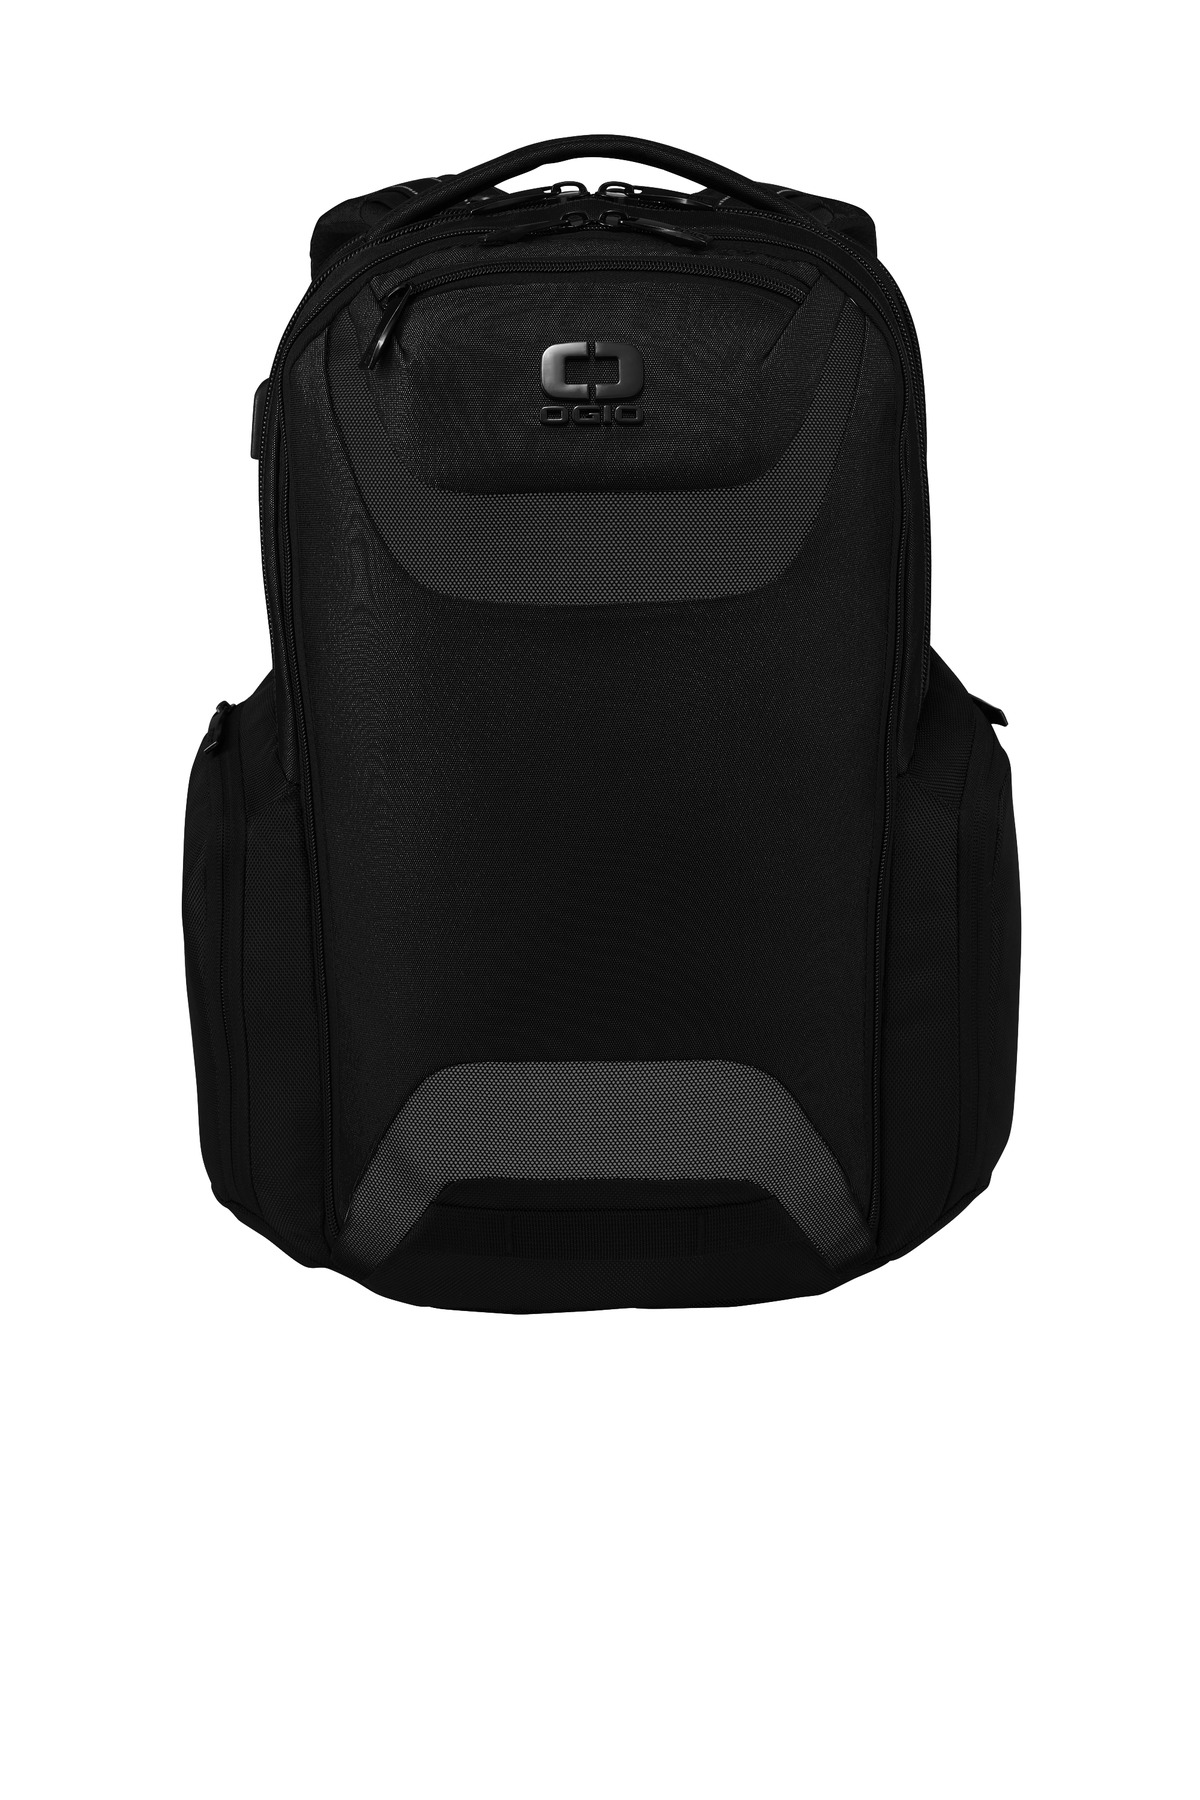 OGIO  ®  Connected Pack. 91008 - Black